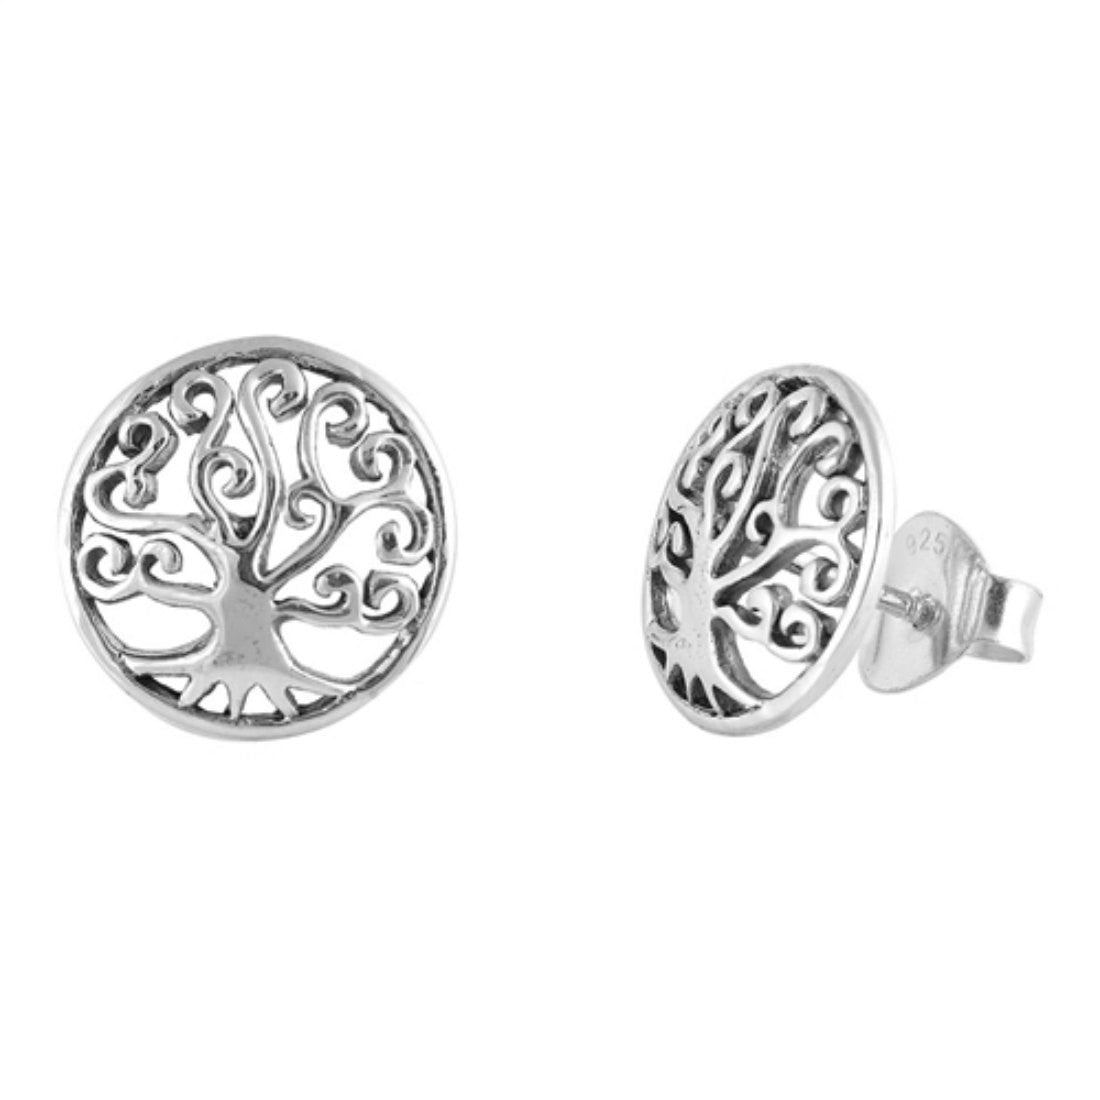 11mm Tree of Life Earrings Tree of Wisdom Solid 925 Sterling Silver Shiny lovely tree of life stud earrings Jewelry Jewelry Filigree Swirl - Blue Apple Jewelry